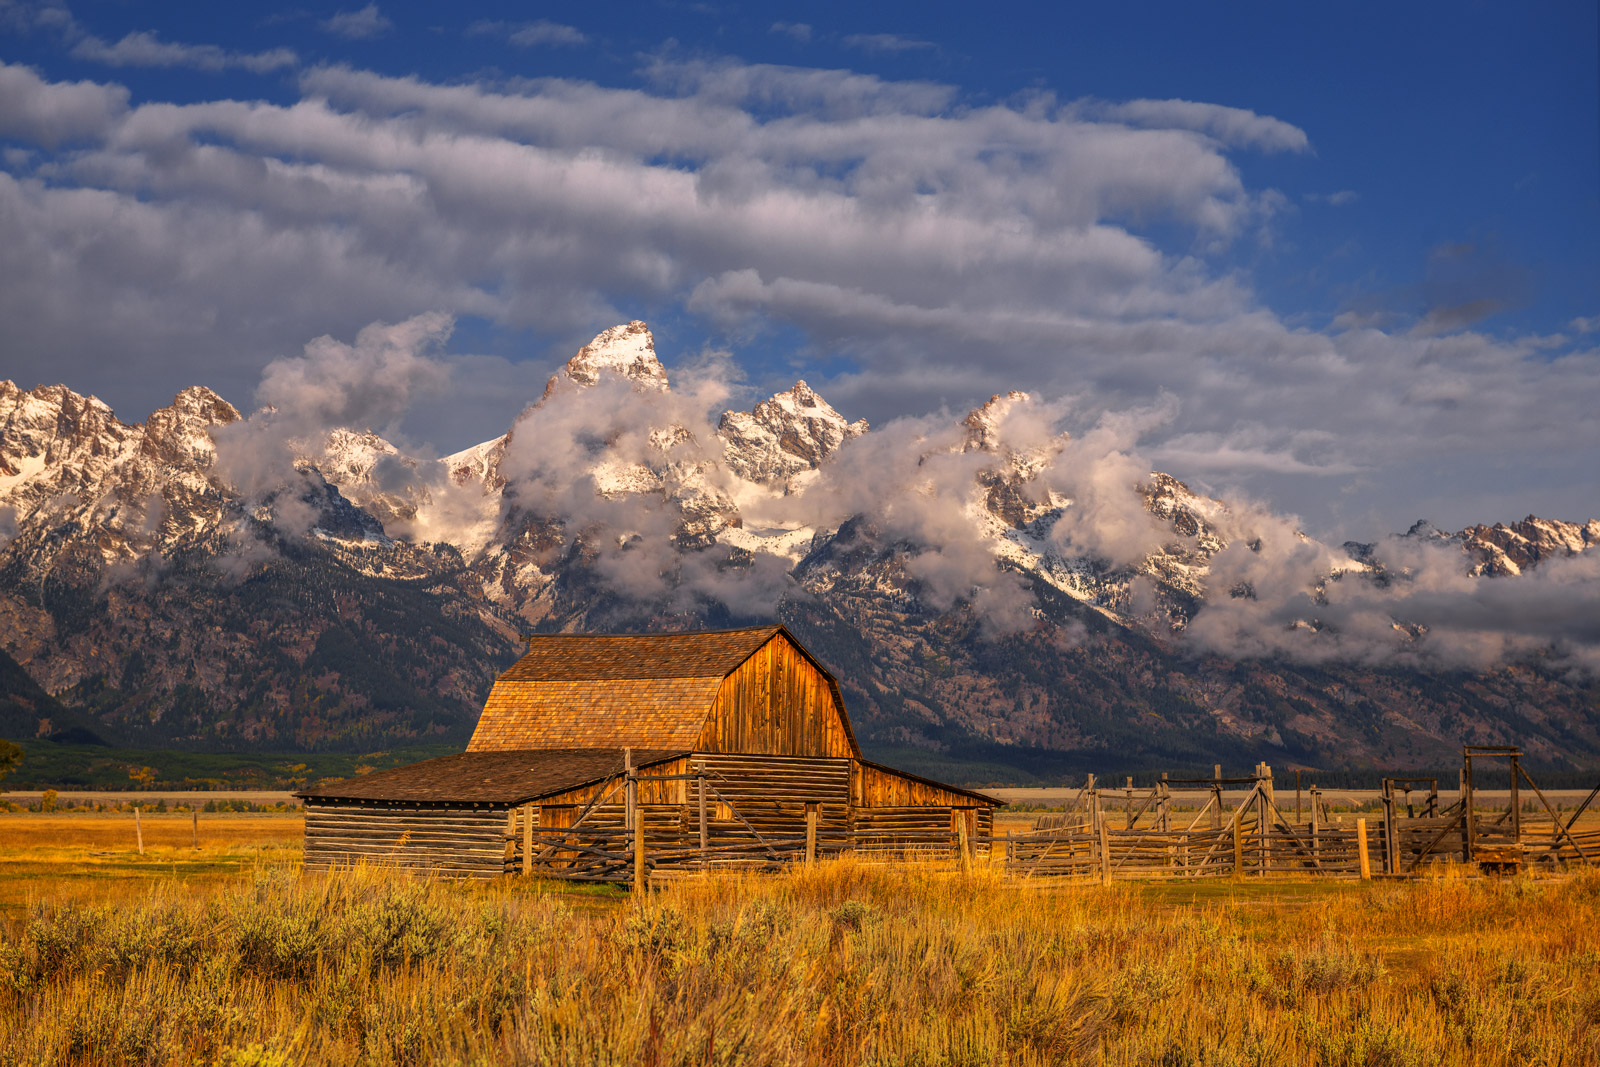 Wyoming, Grand Tetons, National Park, Mormon Row, Barn, Clouds, limited edition, photograph, photo